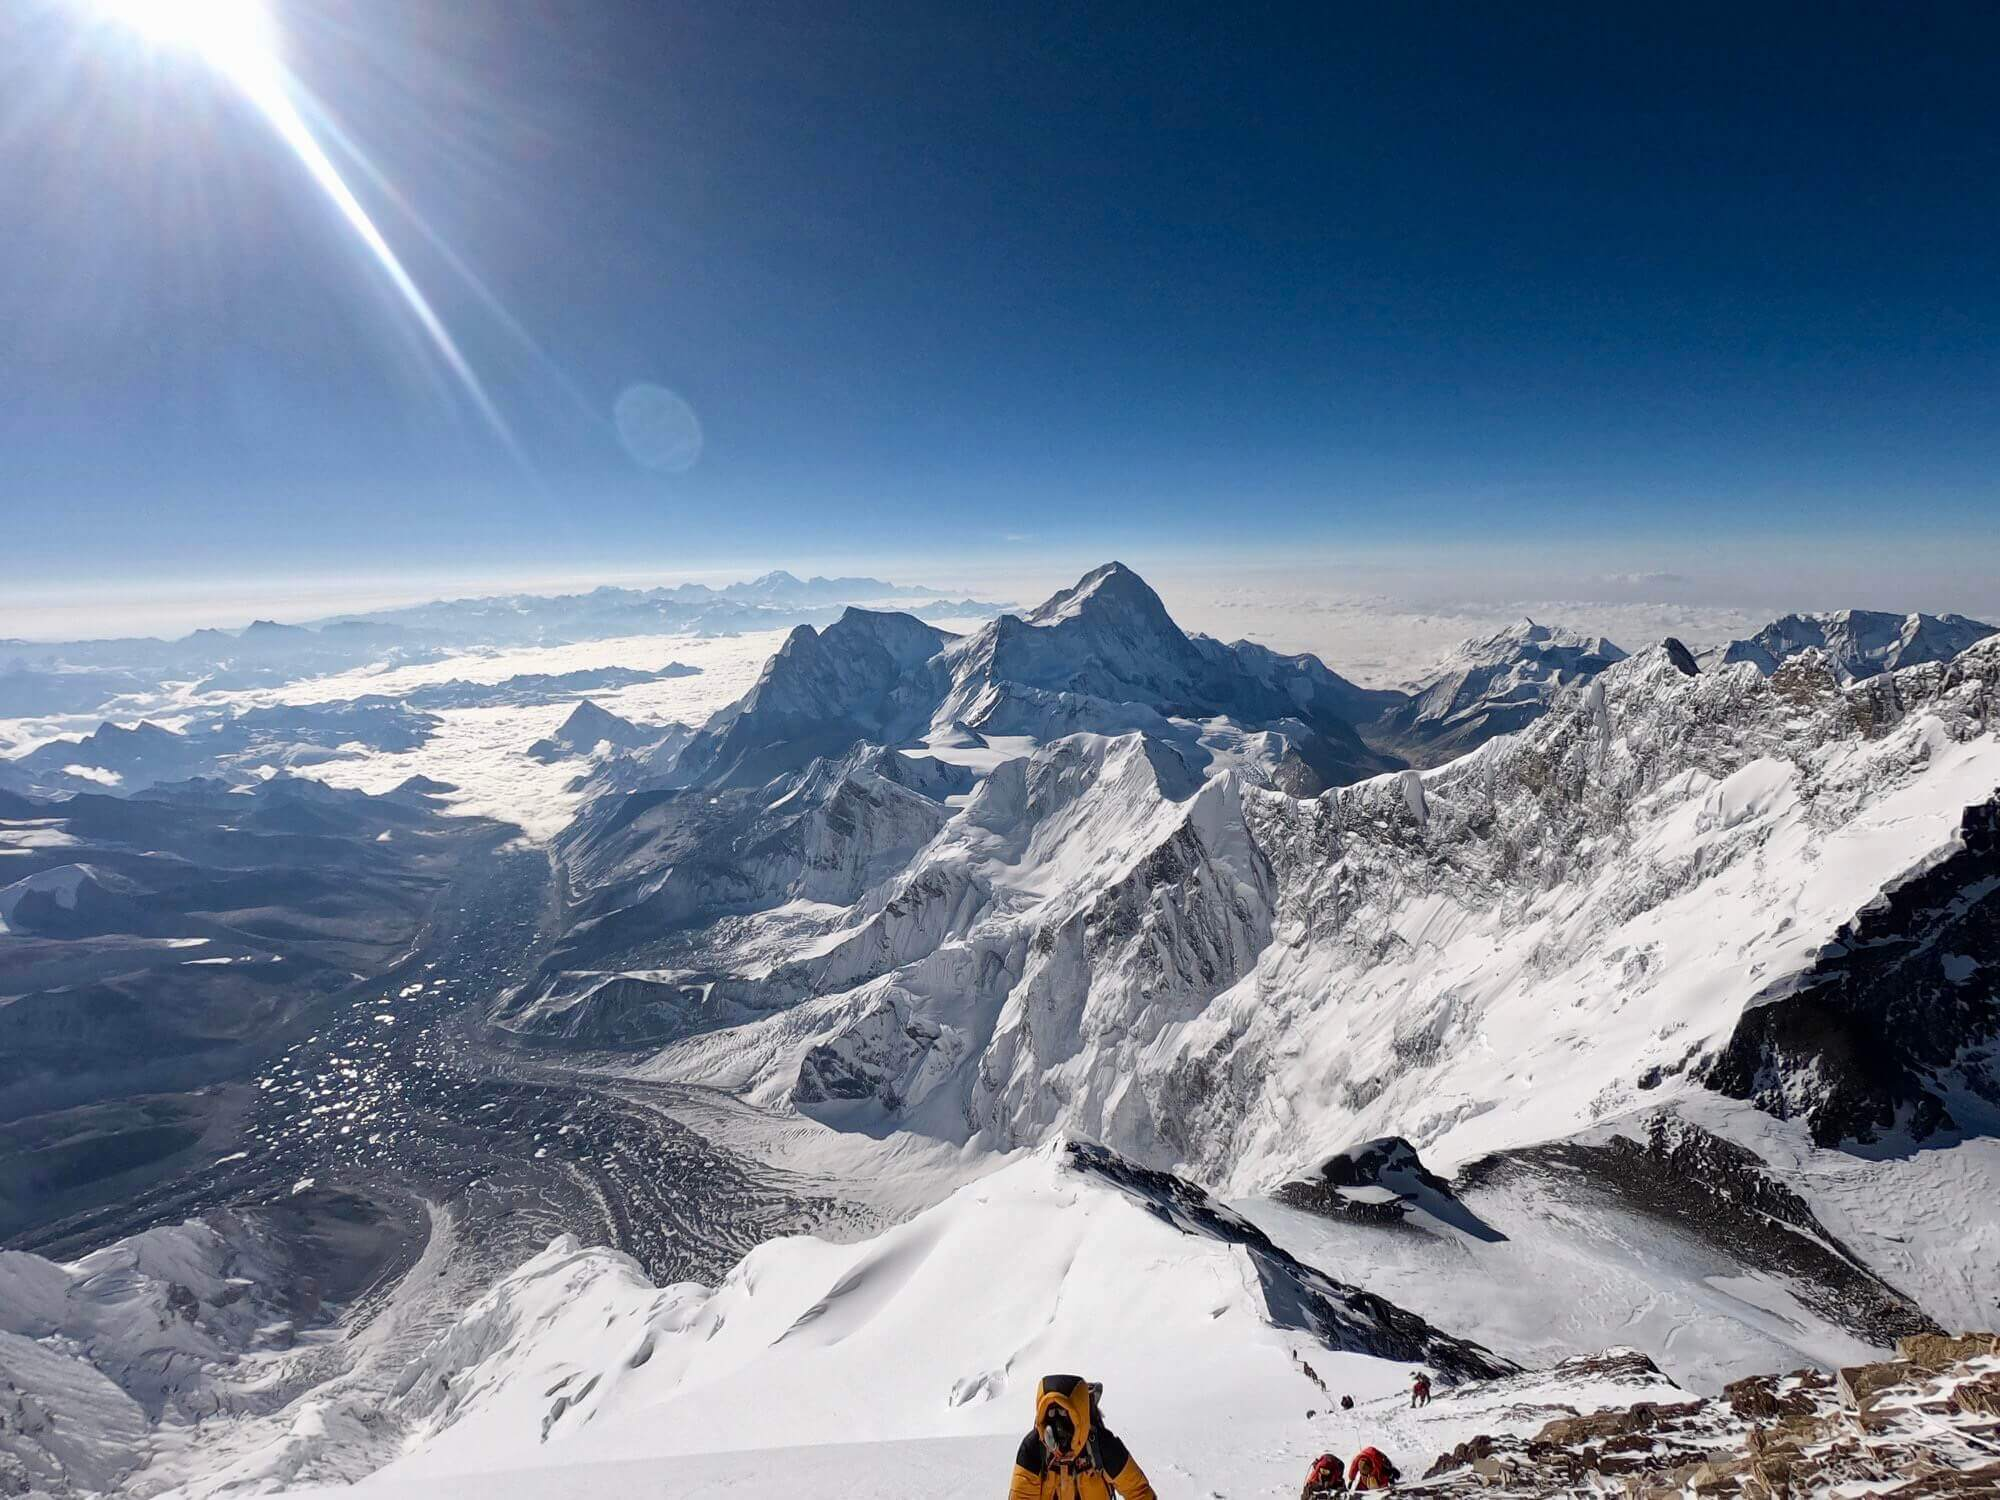 Mt Everest from both sides, now